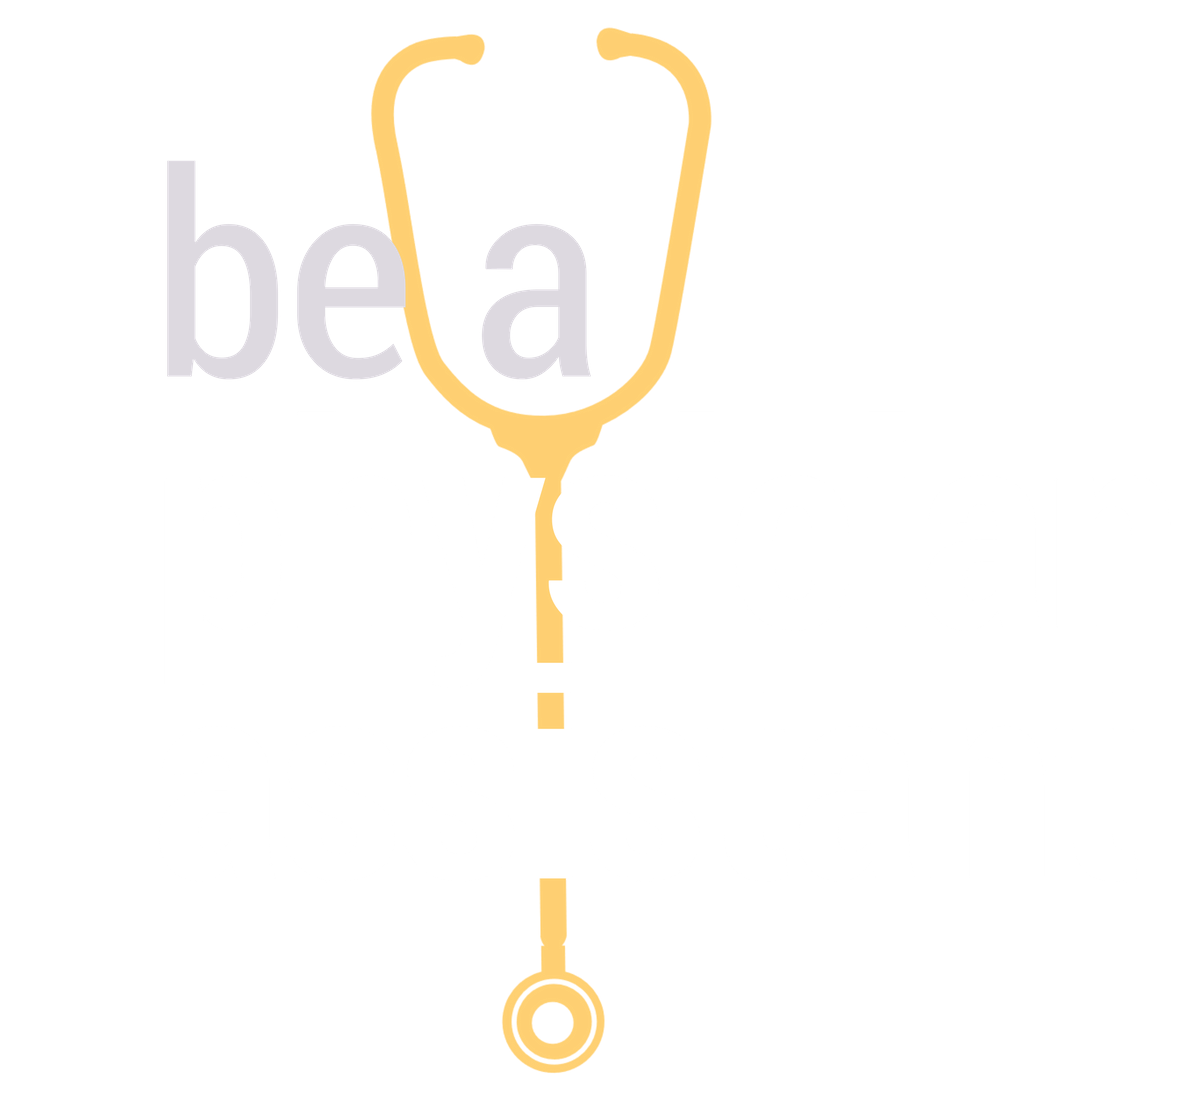 be a physician assistant - Physician Assistant Interview Questions For Physician Assistants With Answers